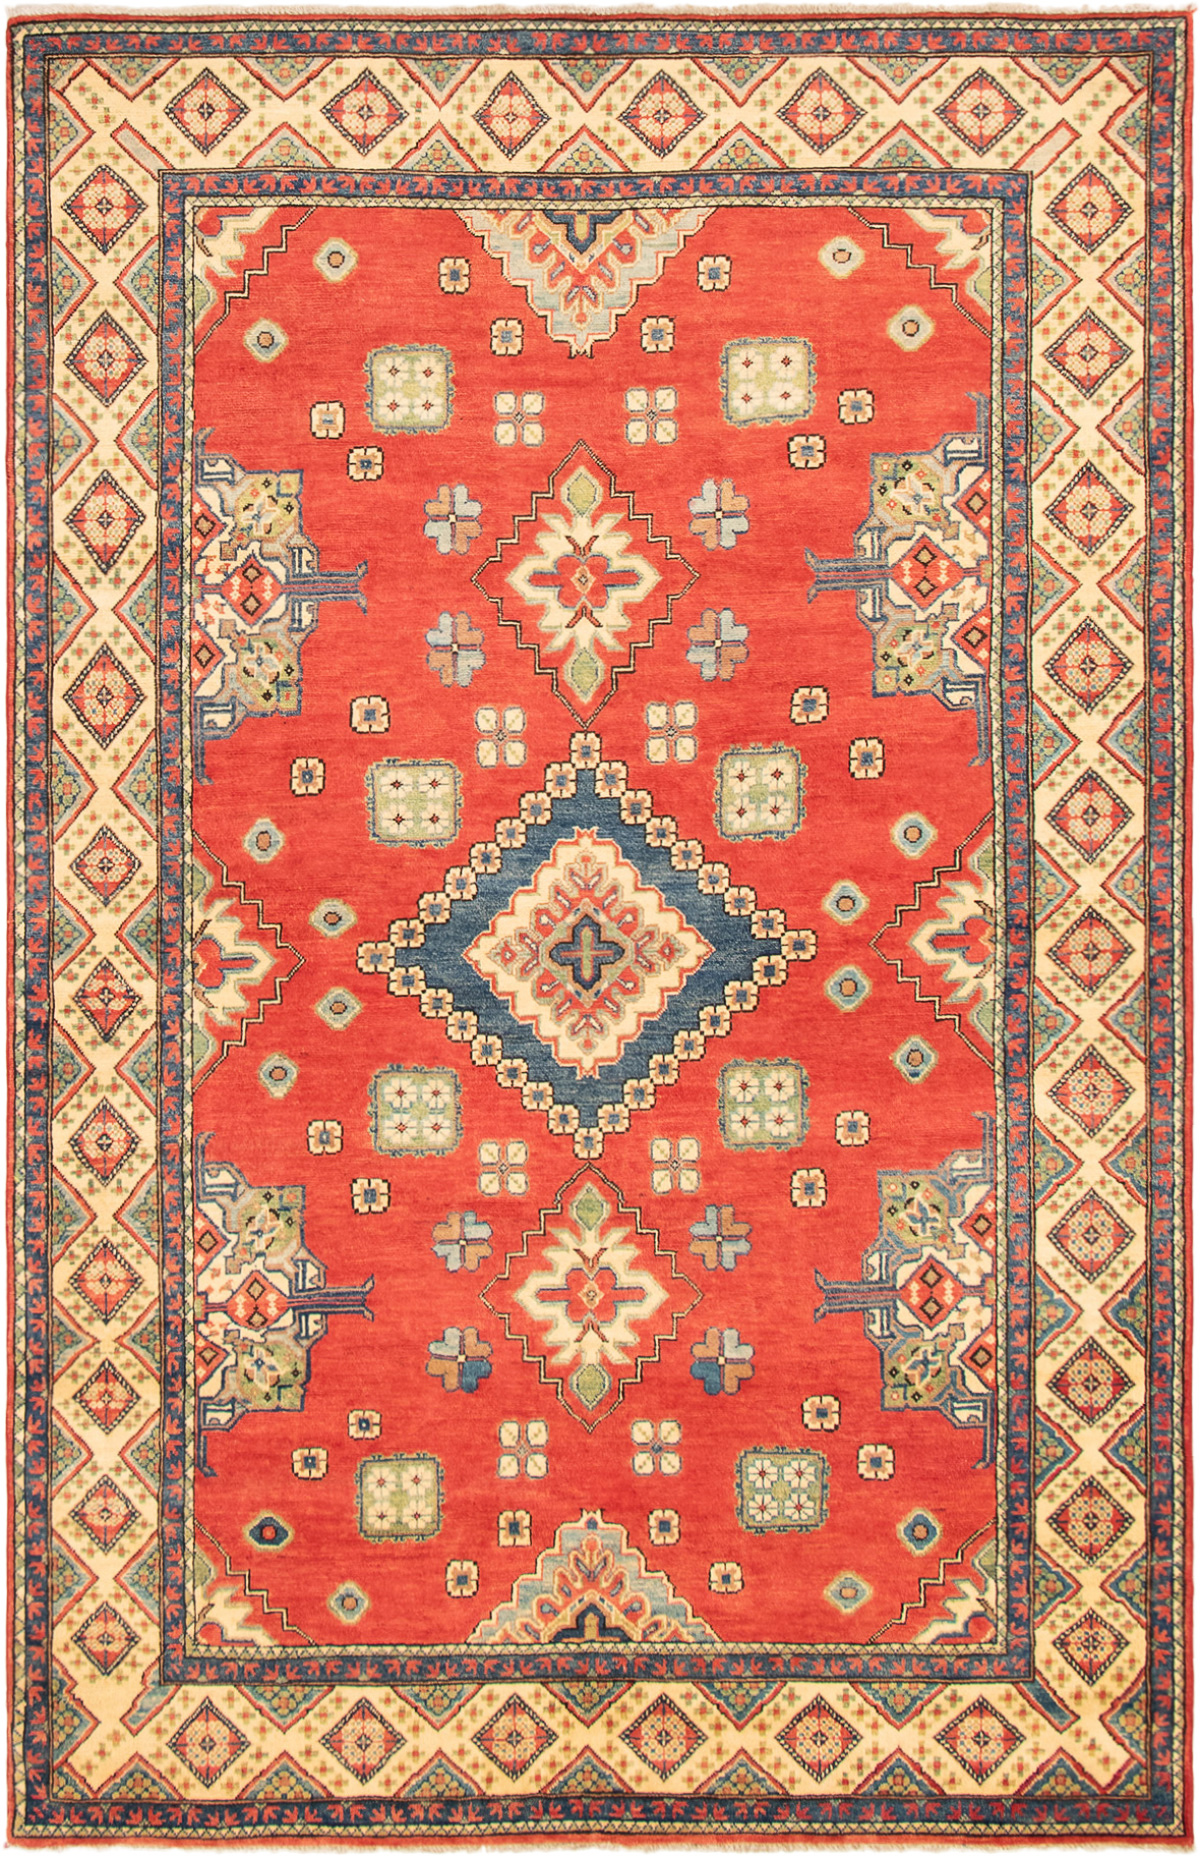 "Hand-knotted Finest Gazni Red Wool Rug 6'3"" x 9'8""  Size: 6'3"" x 9'8"""